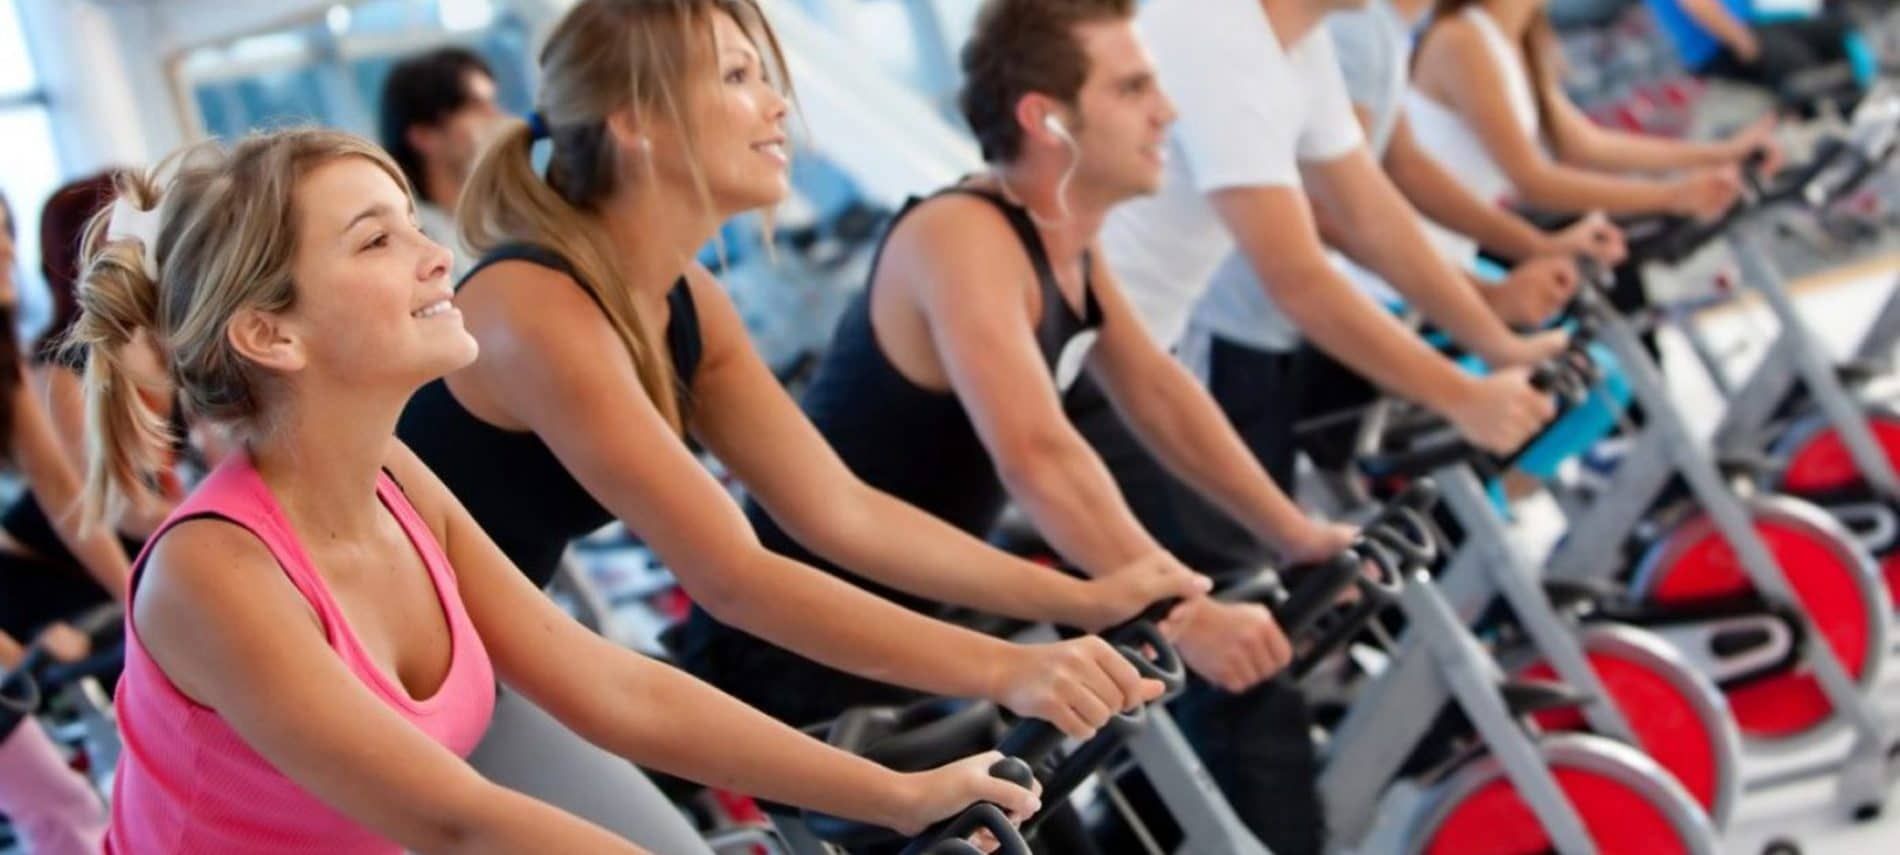 group of people riding indoor bikes in a spin class